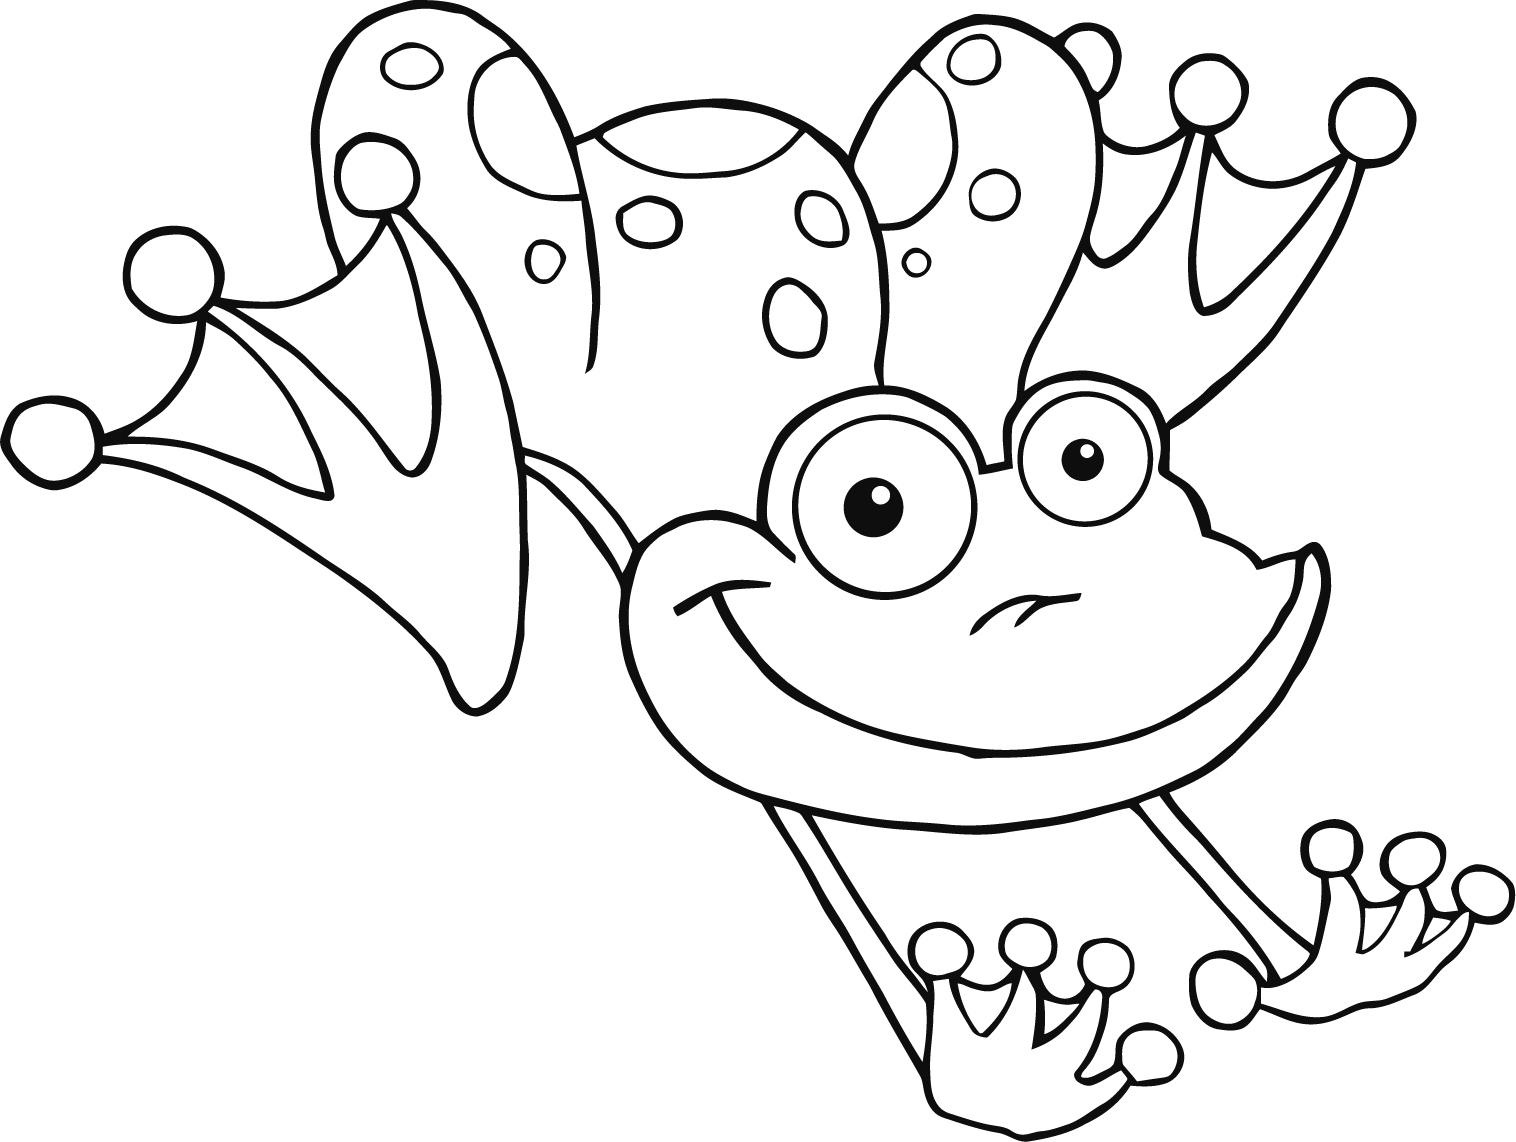 1516x1142 Frog Coloring Page New Free Printable Frog Coloring Pages For Kids